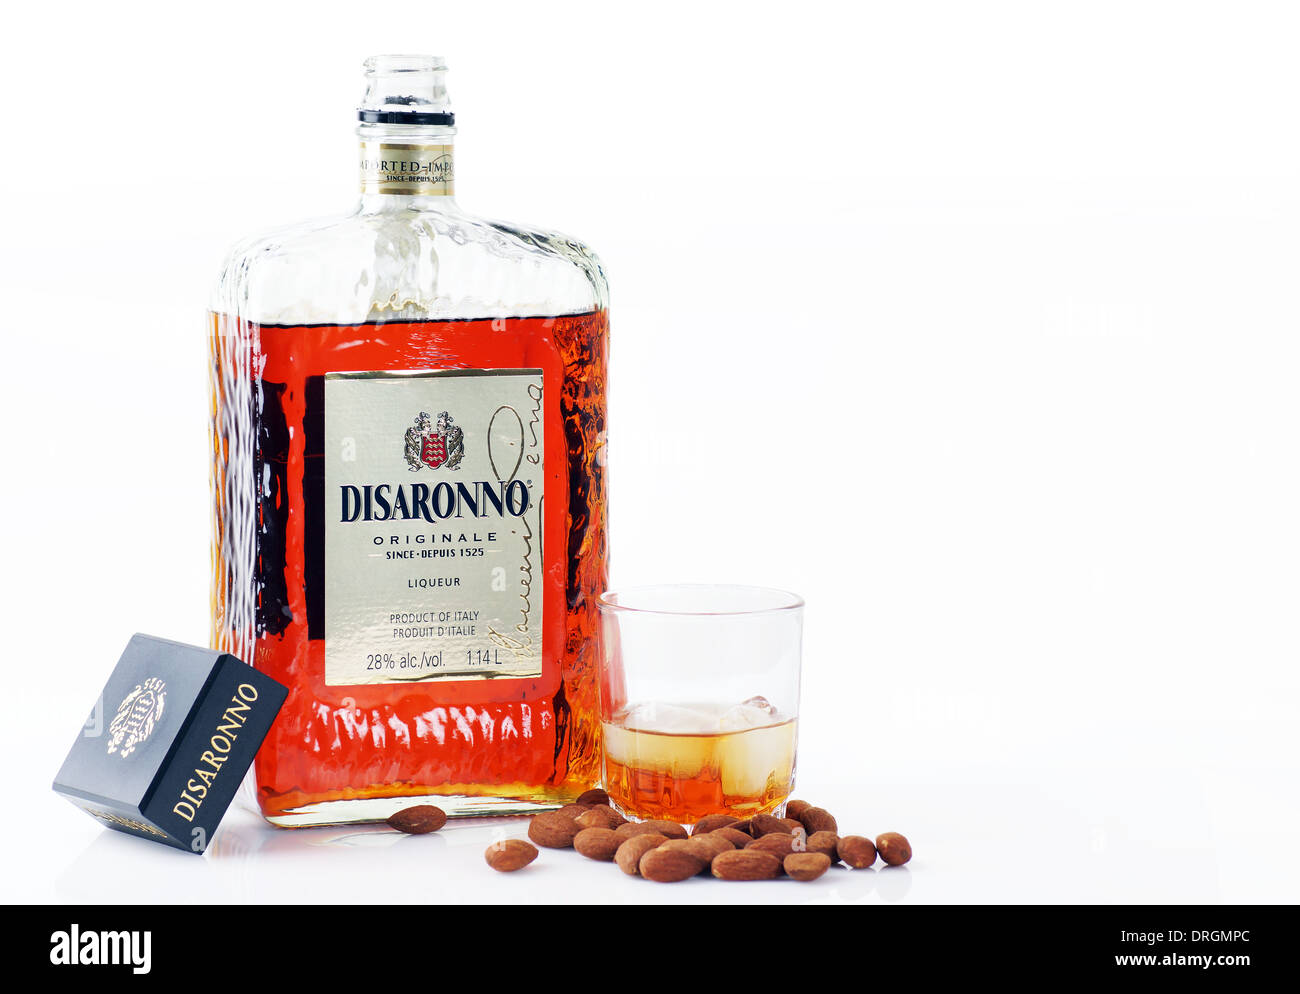 CANADA, QUEBEC, JANUARY, 6, 2014: Disaronno Amaretto liquor is an imported almond flavored alcohol from Italy. - Stock Image